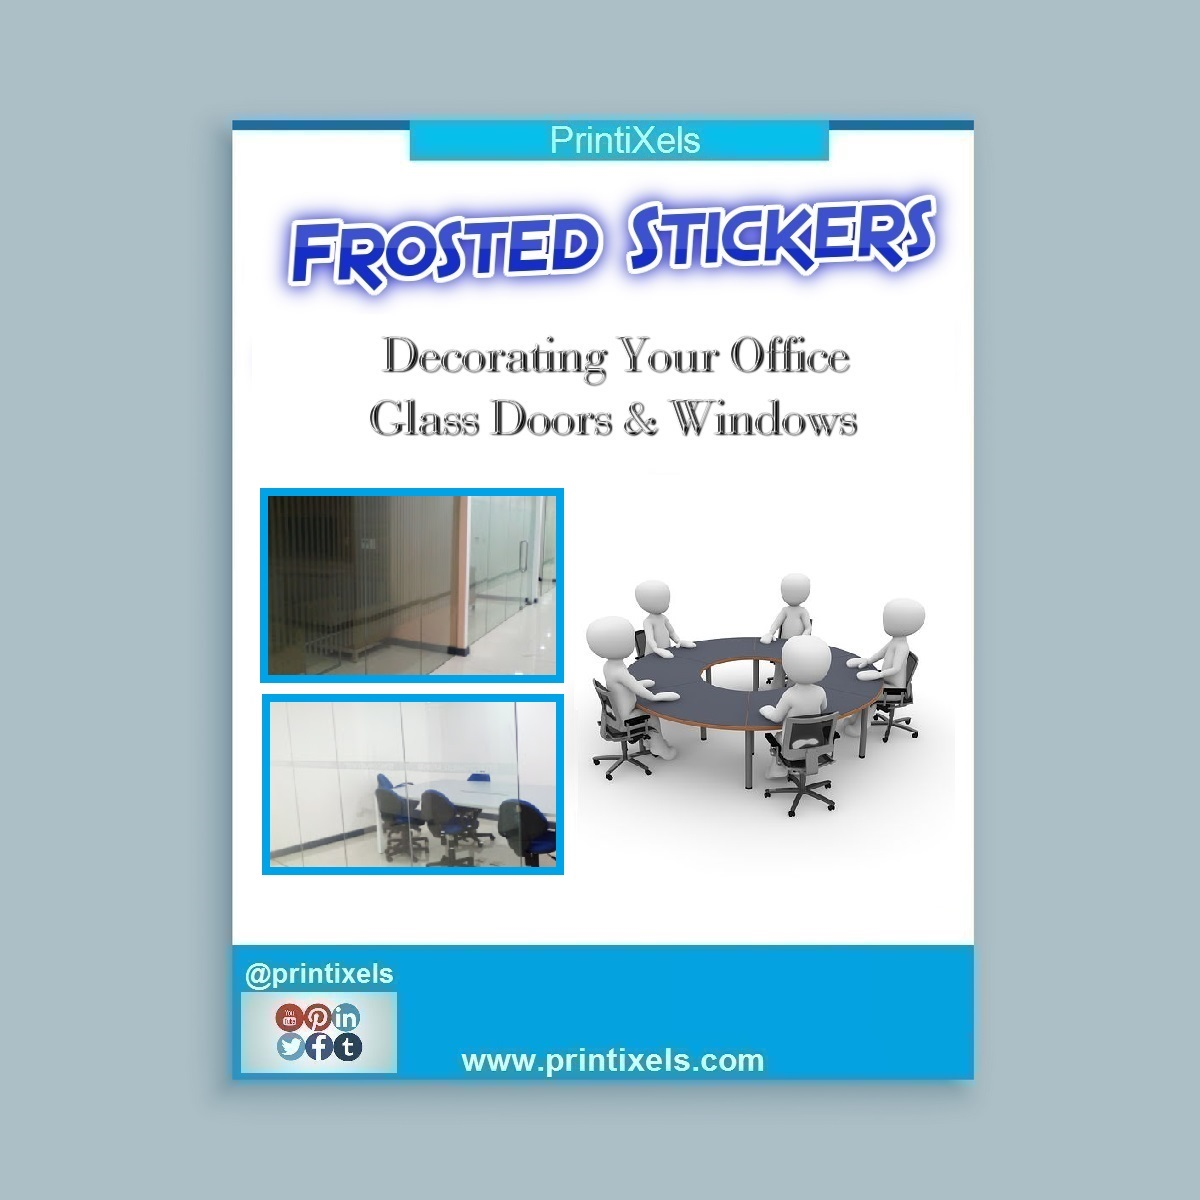 Frosted Stickers: Decorating Your Office Glass Doors & Windows